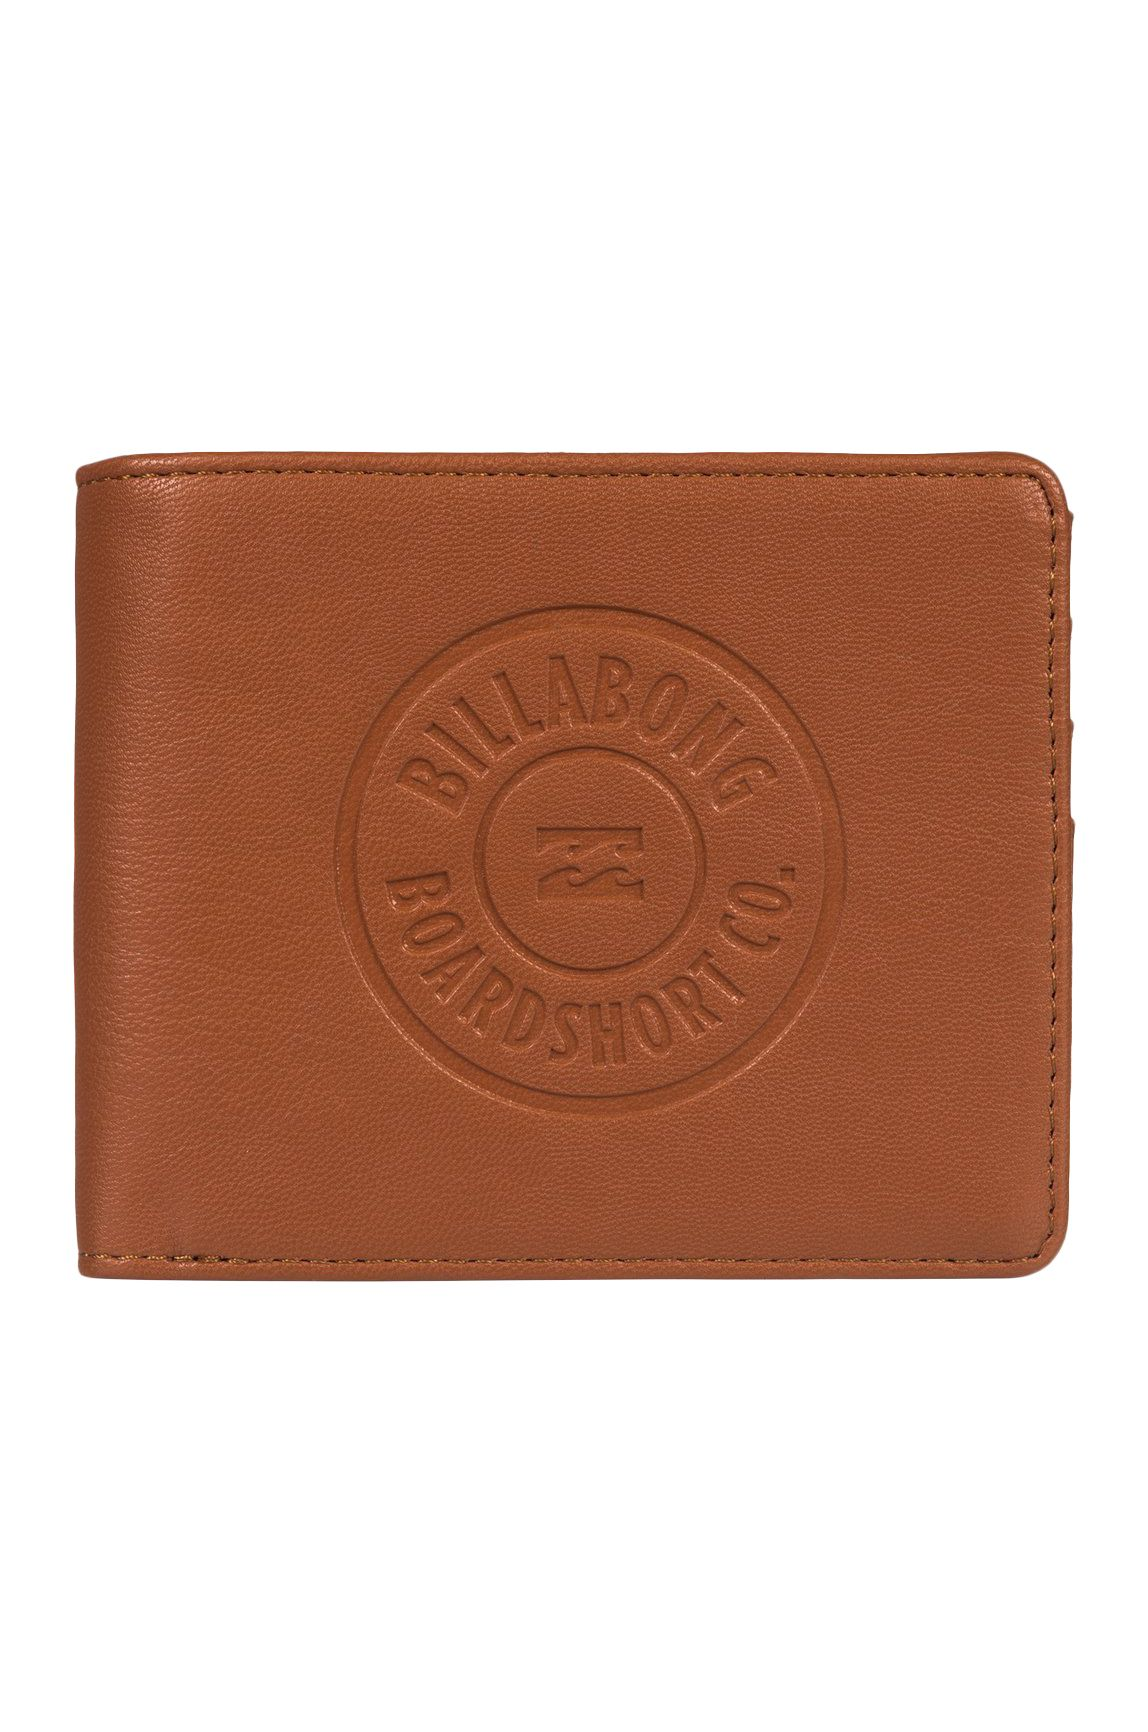 Carteira Billabong WALLED ID Tan